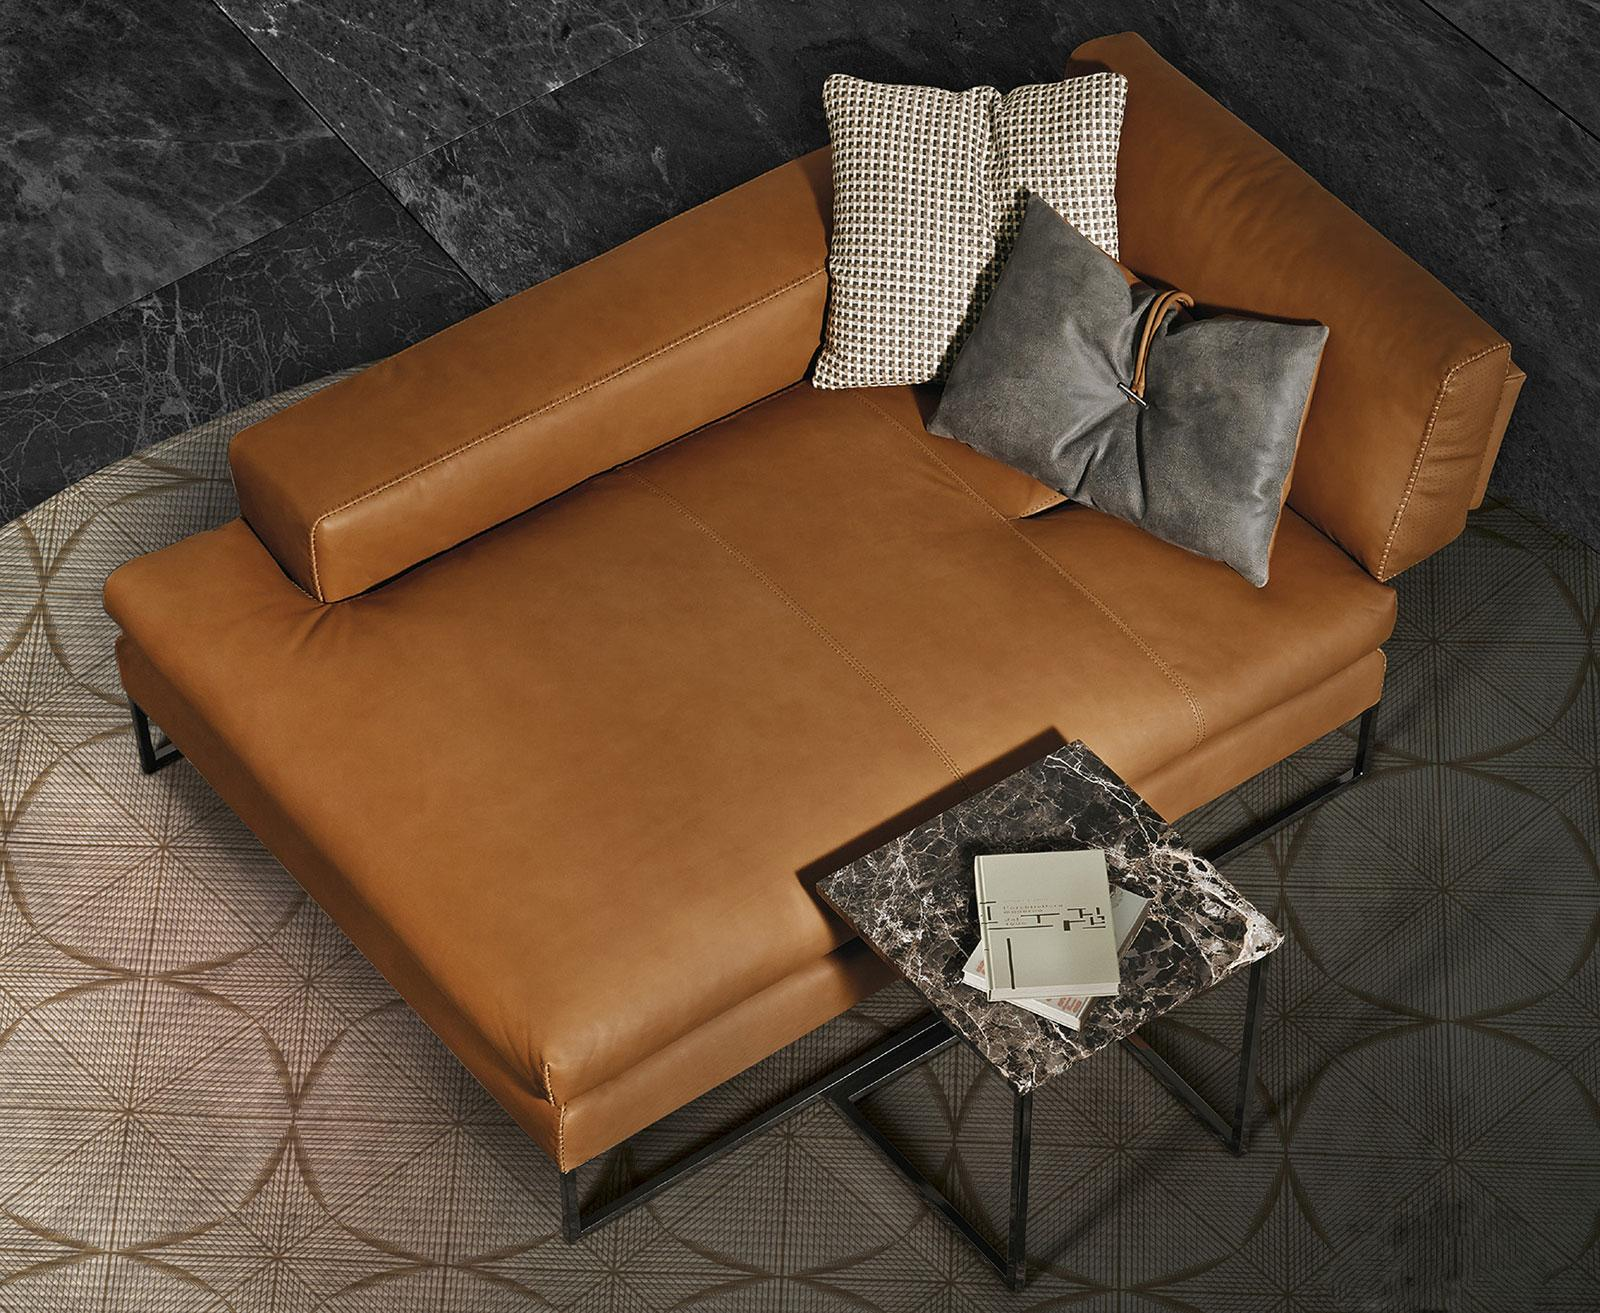 Sofas Online Shop Italian Luxury Sofas And Living Room Furniture Shop Online